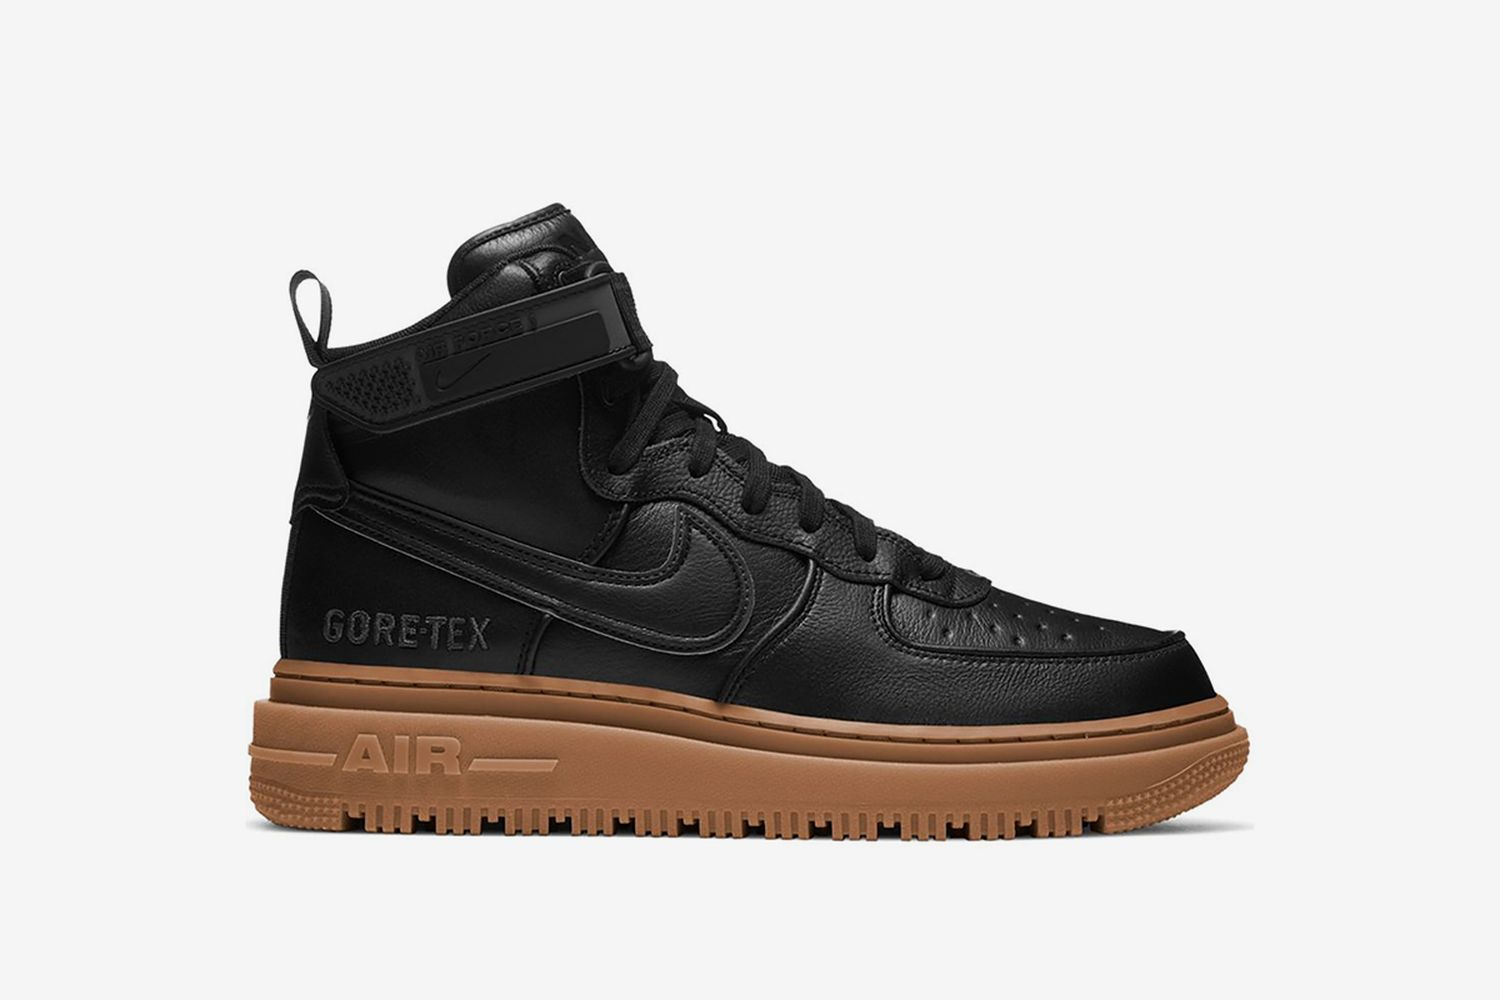 Air Force 1 High Gore-Tex Boot Anthracite